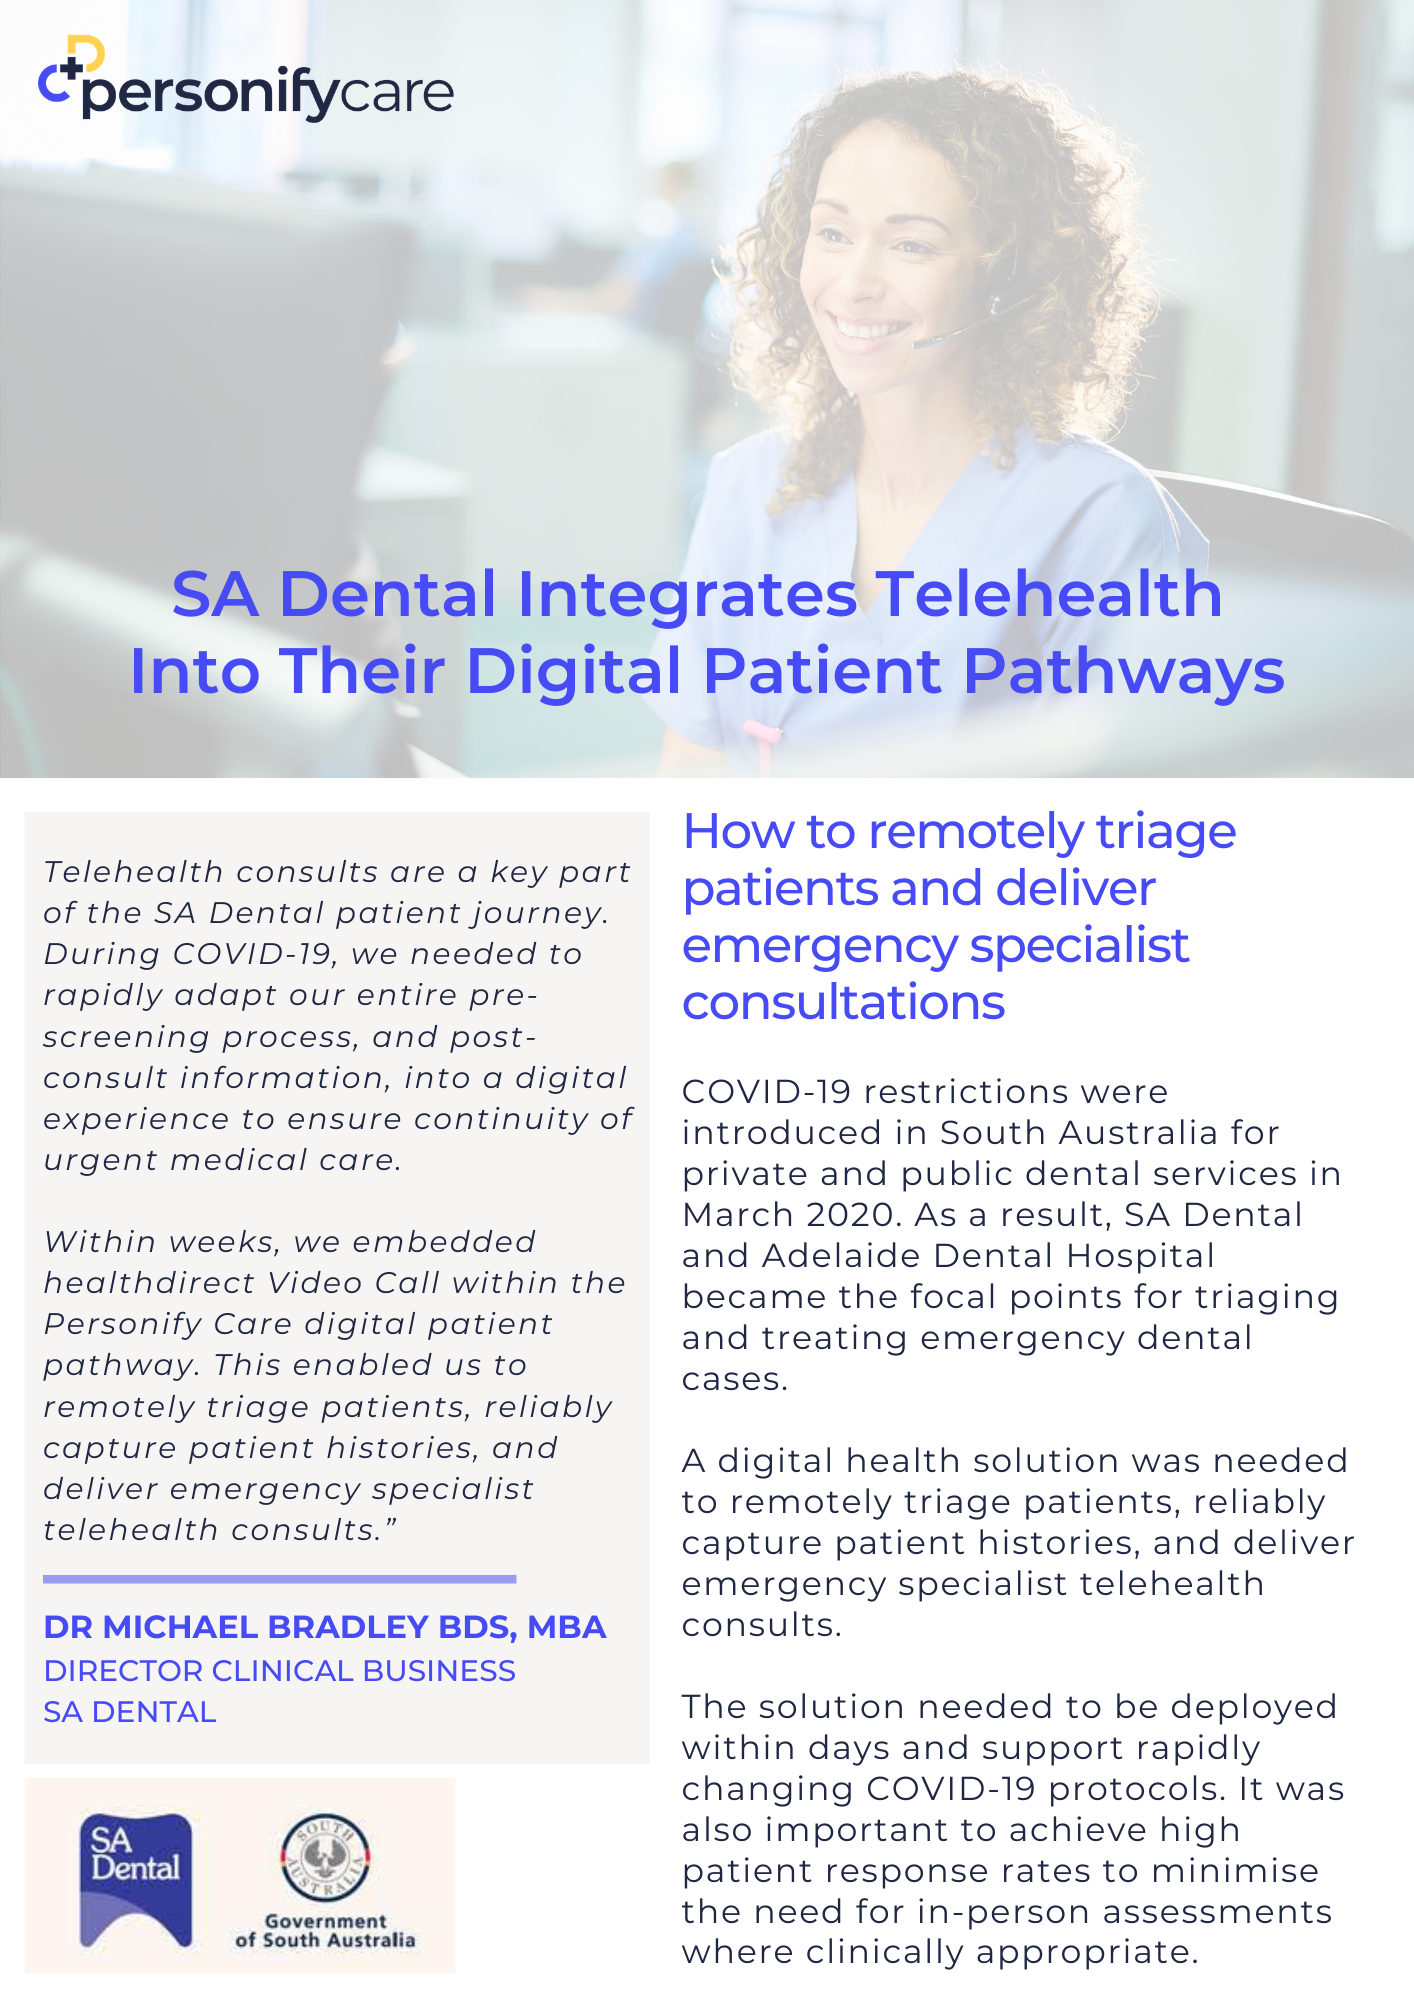 SA Dental HealthDirect & Personify Care Case Study Cover Image